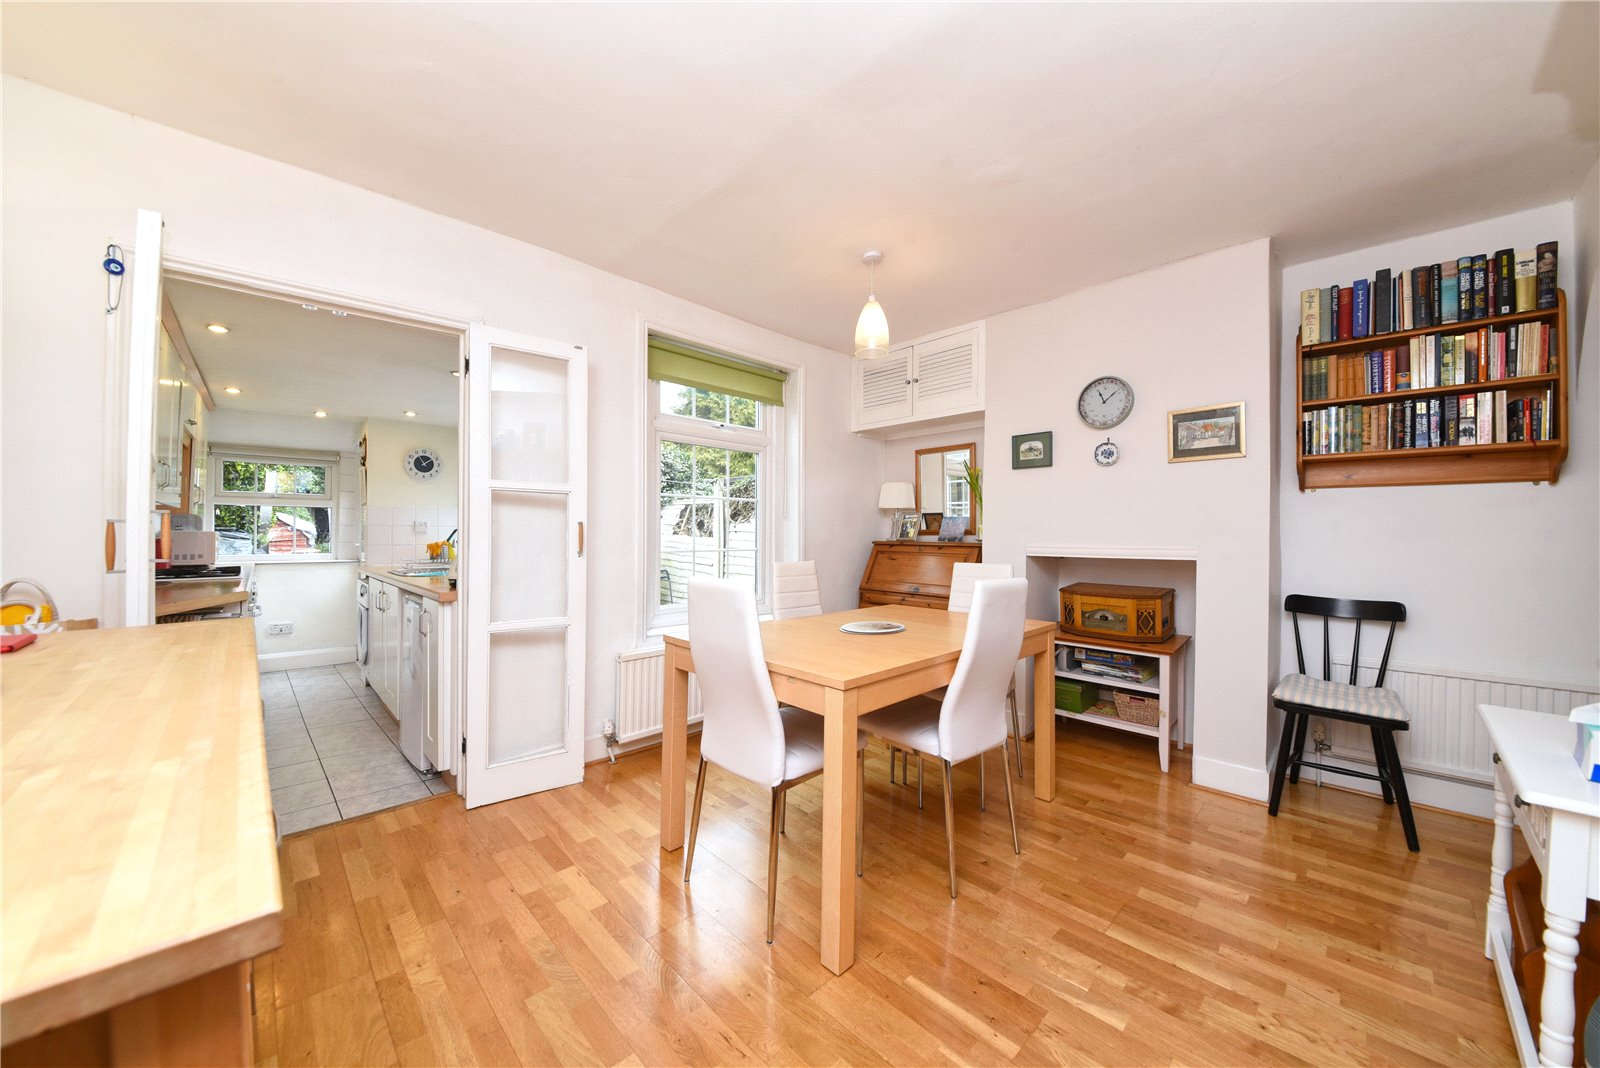 2 bed house for sale in London, N12 9JN, N12